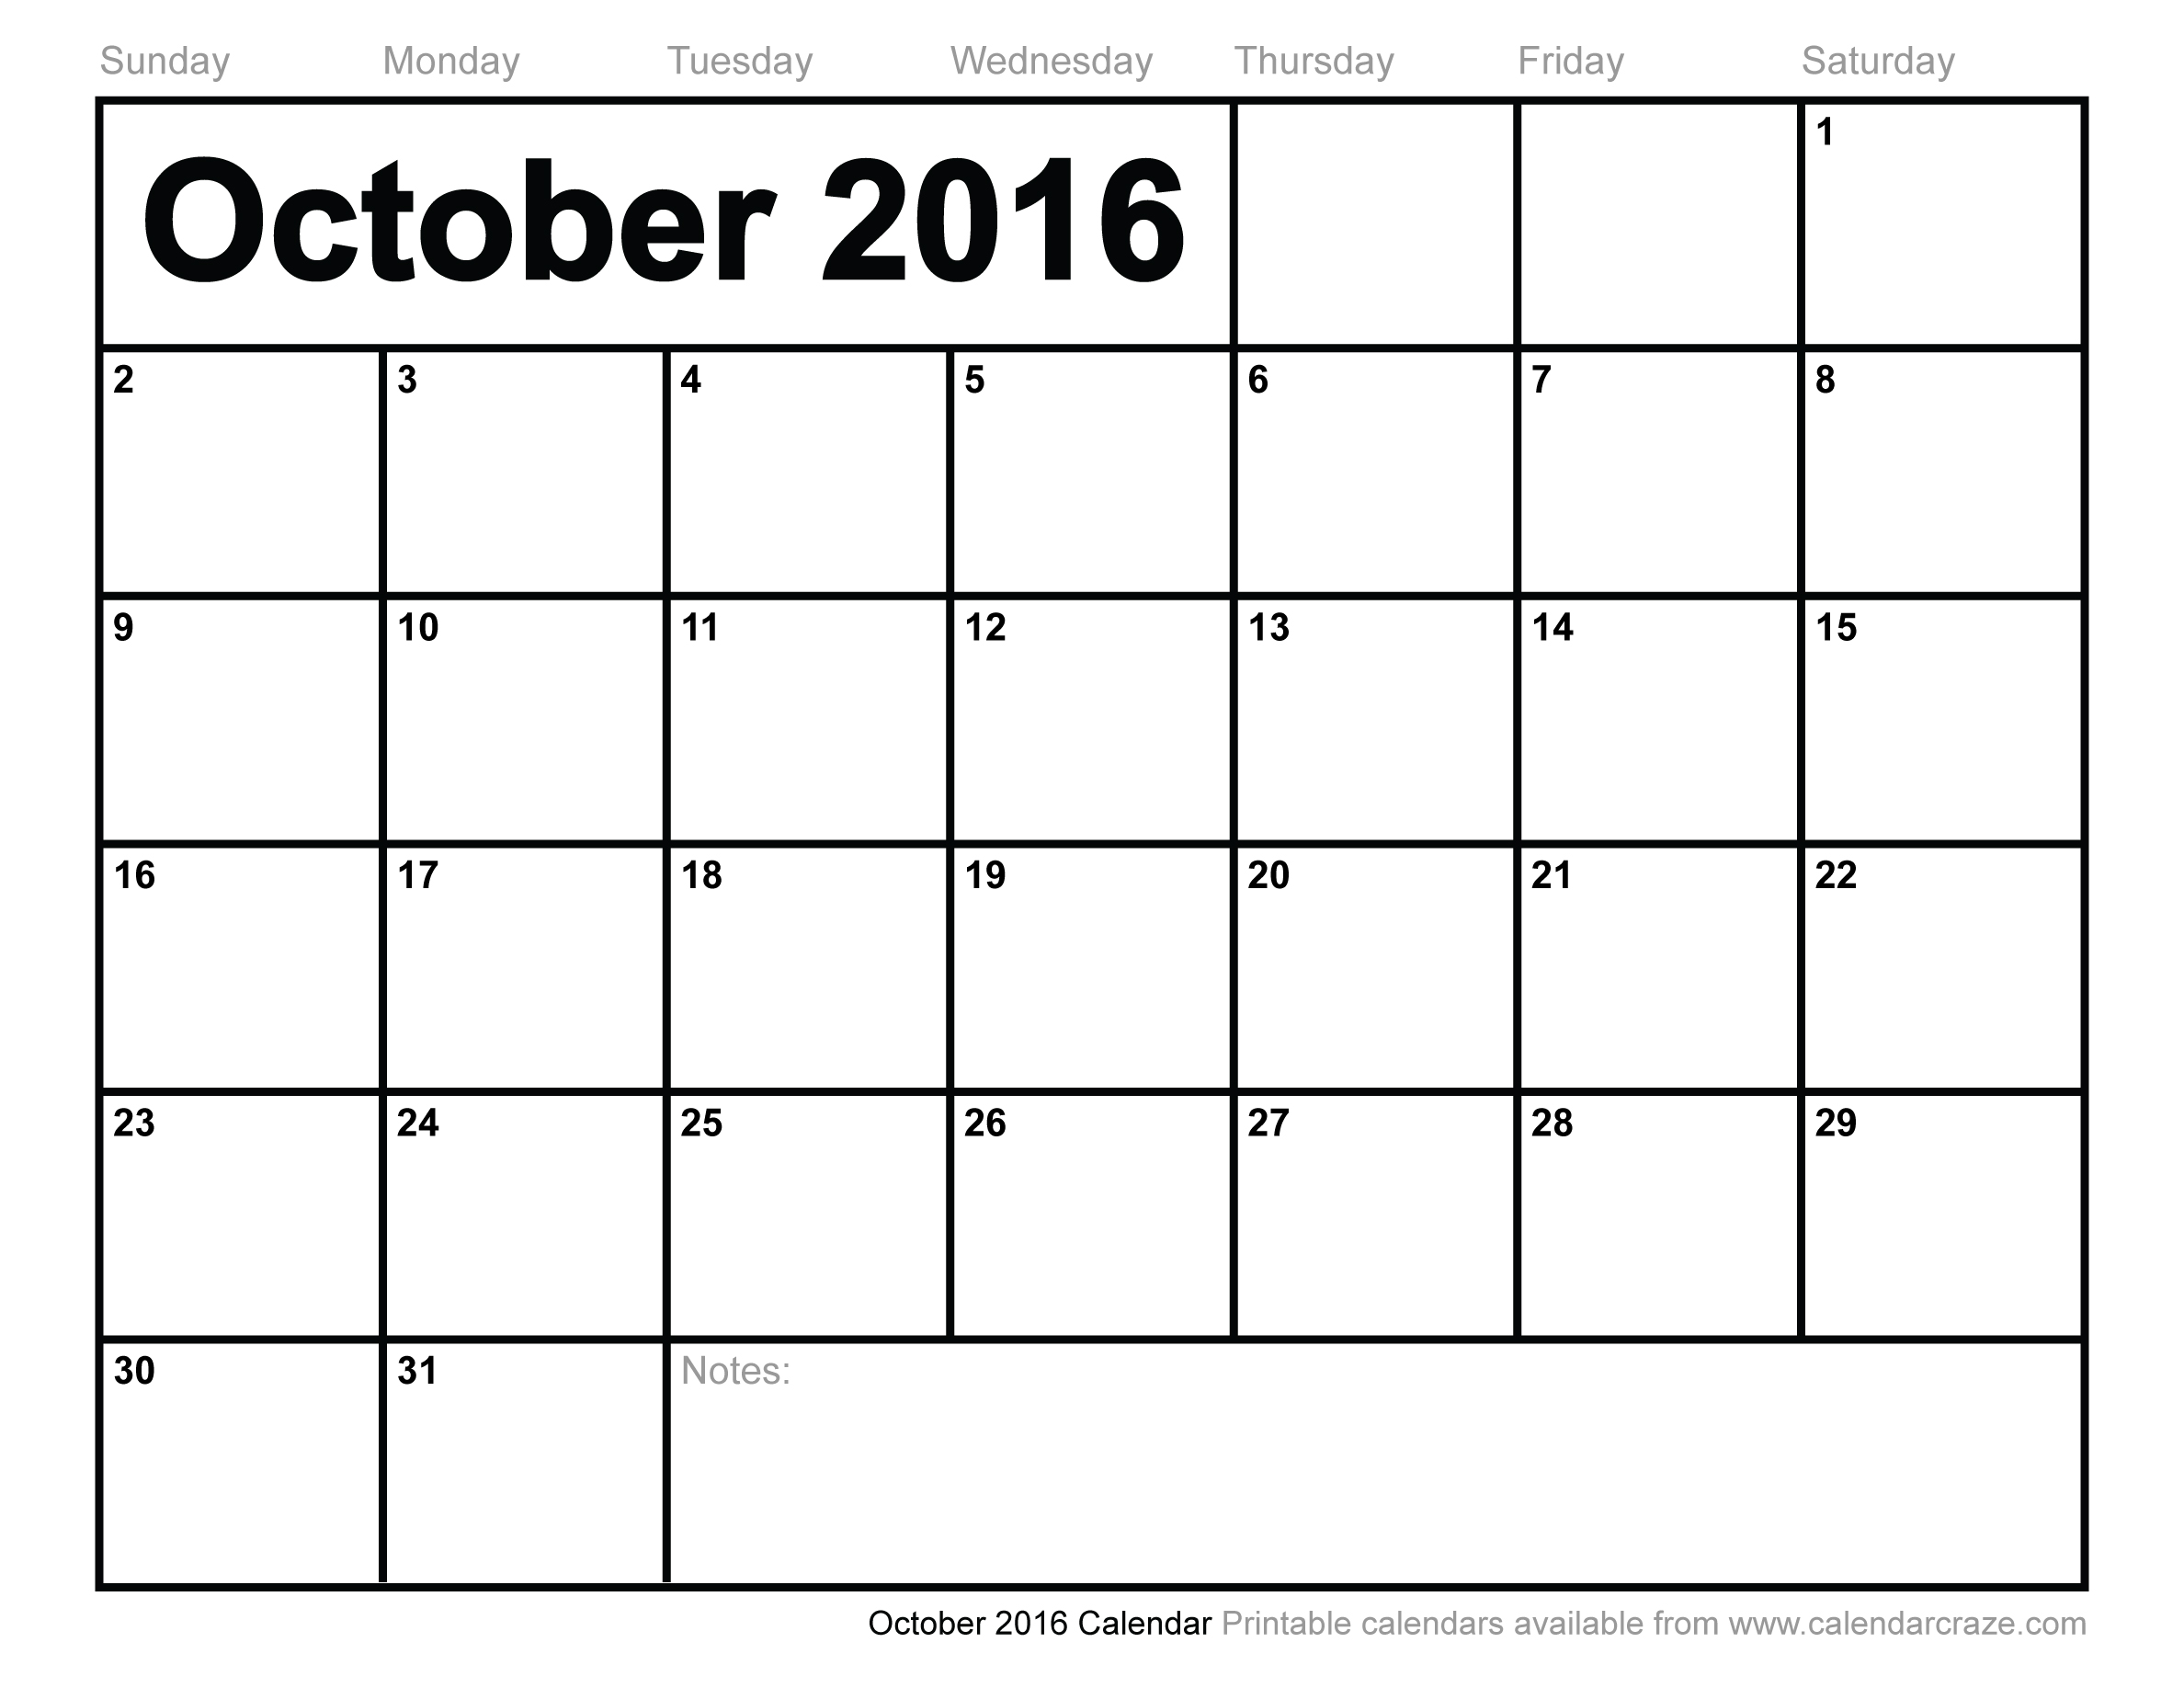 5 Images of October 2016 Calendar Printable Free